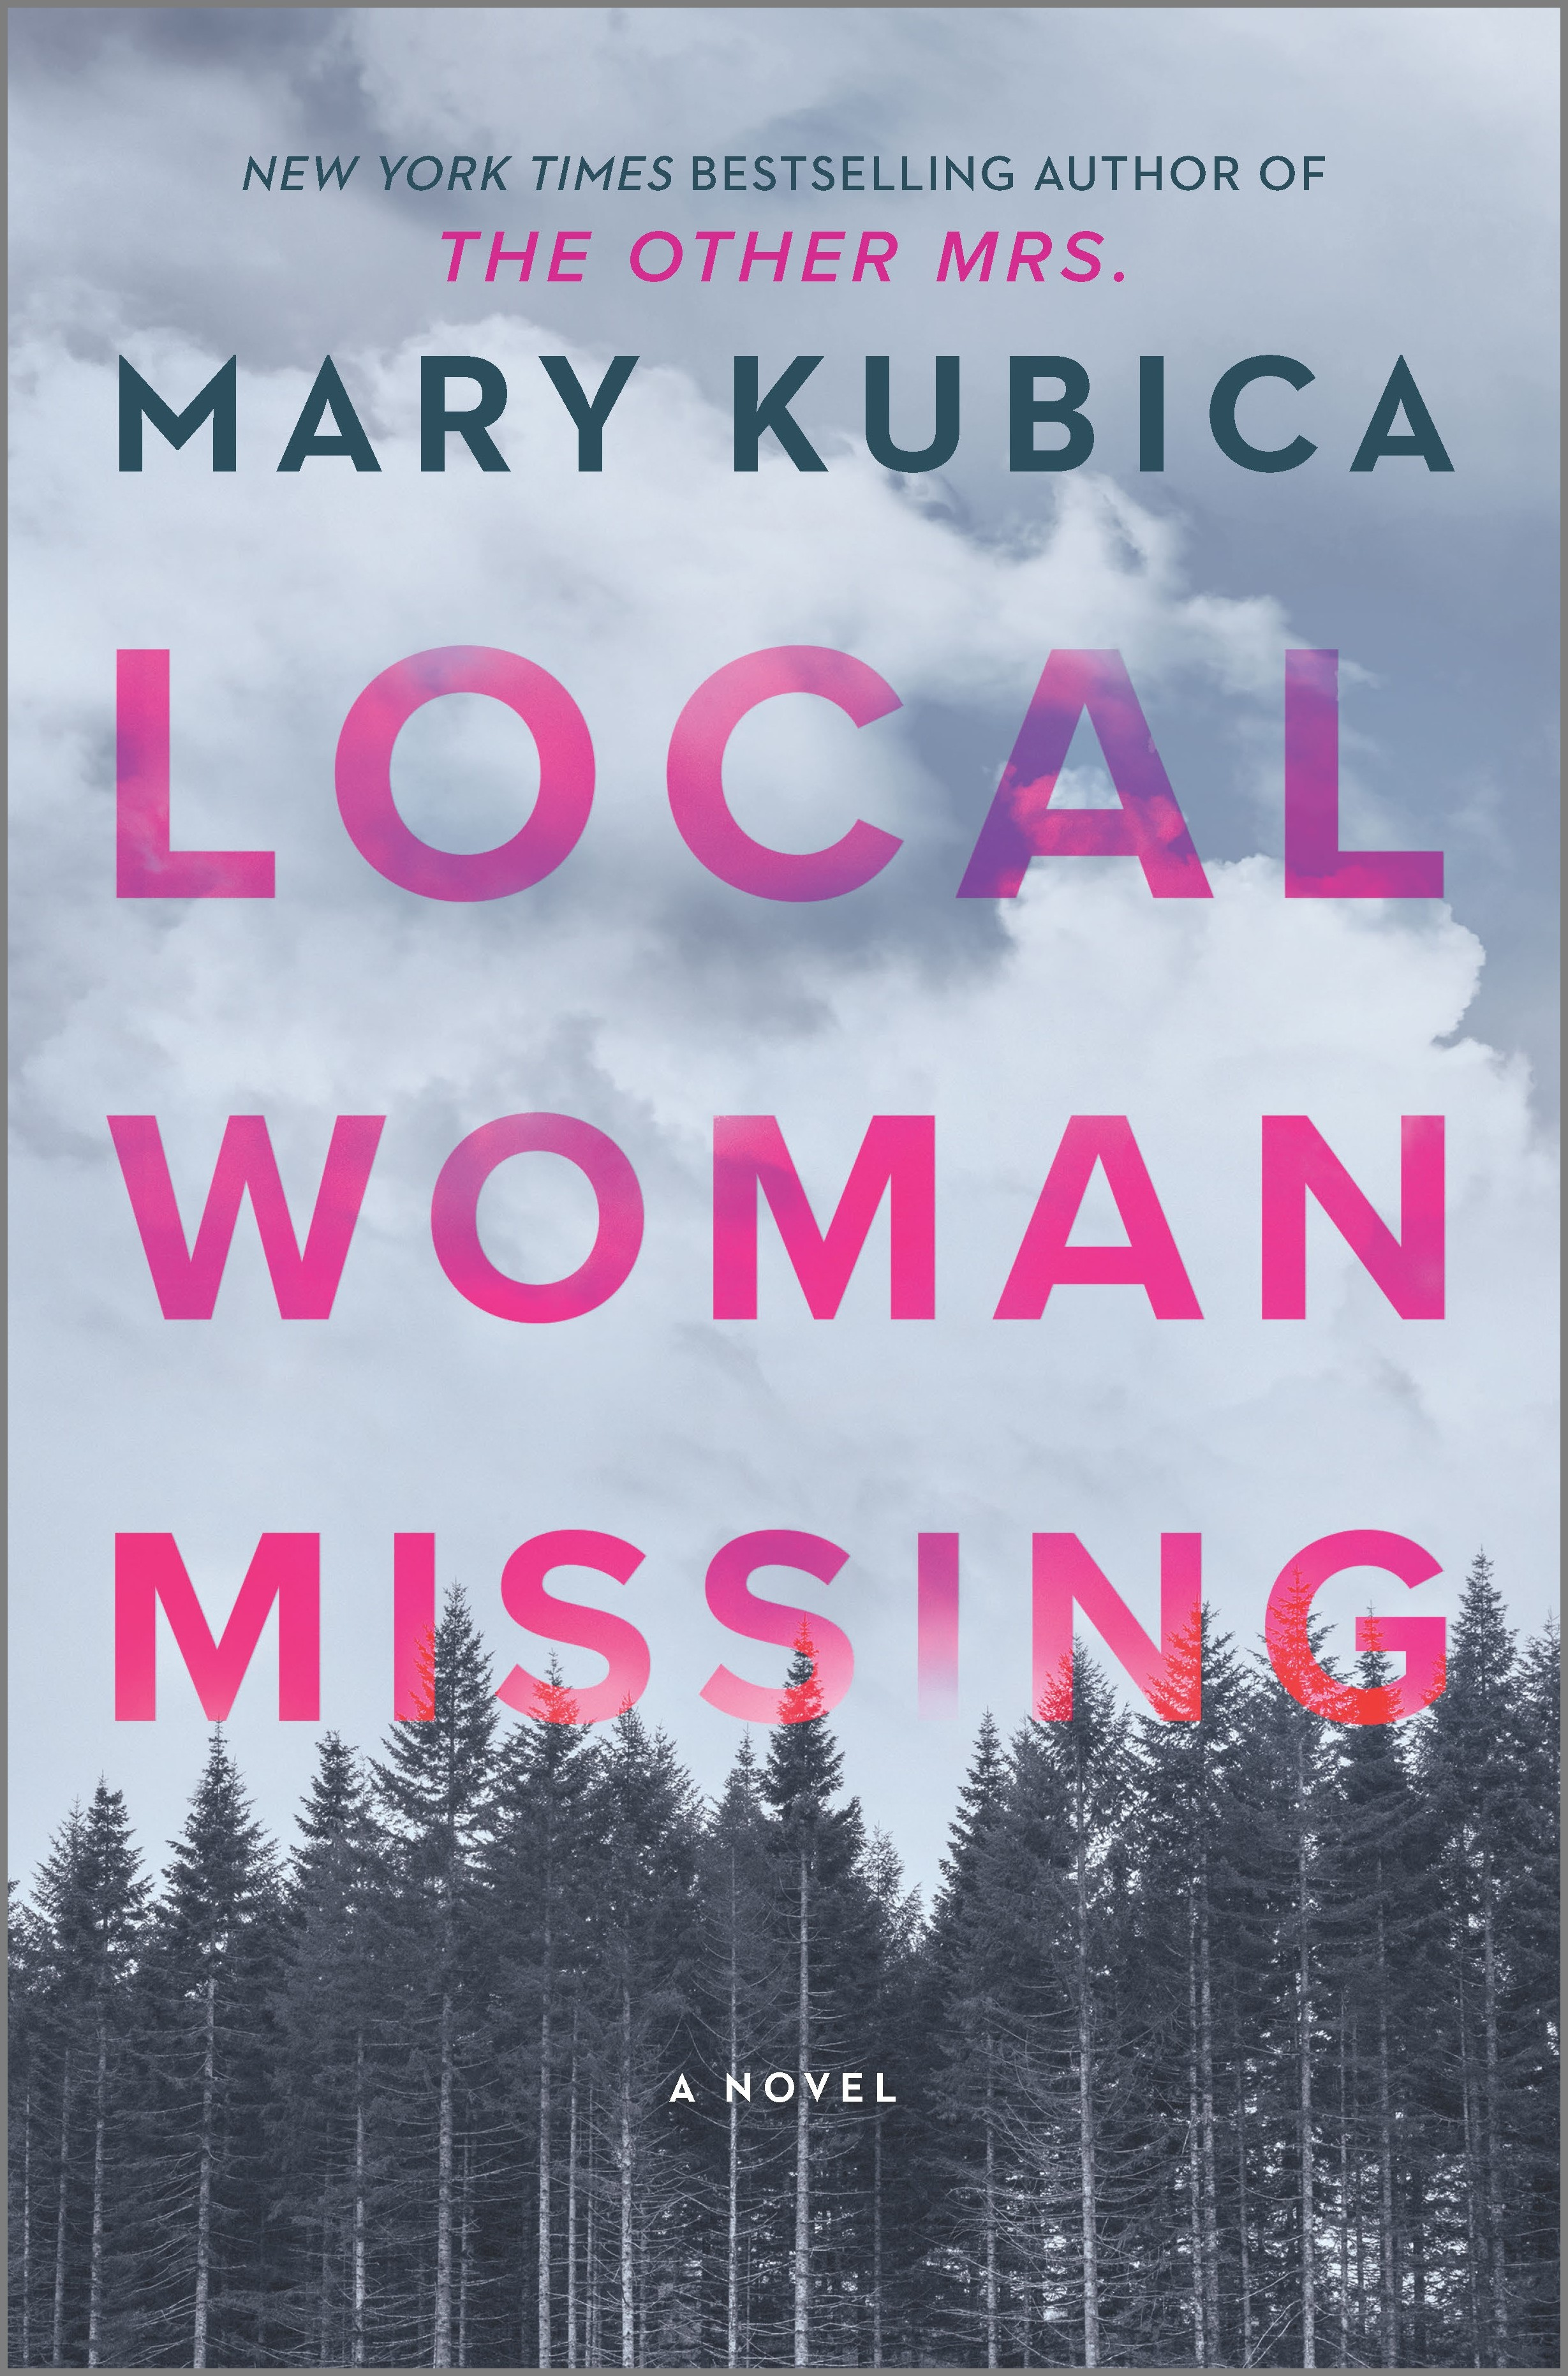 Local Woman Missing A Novel